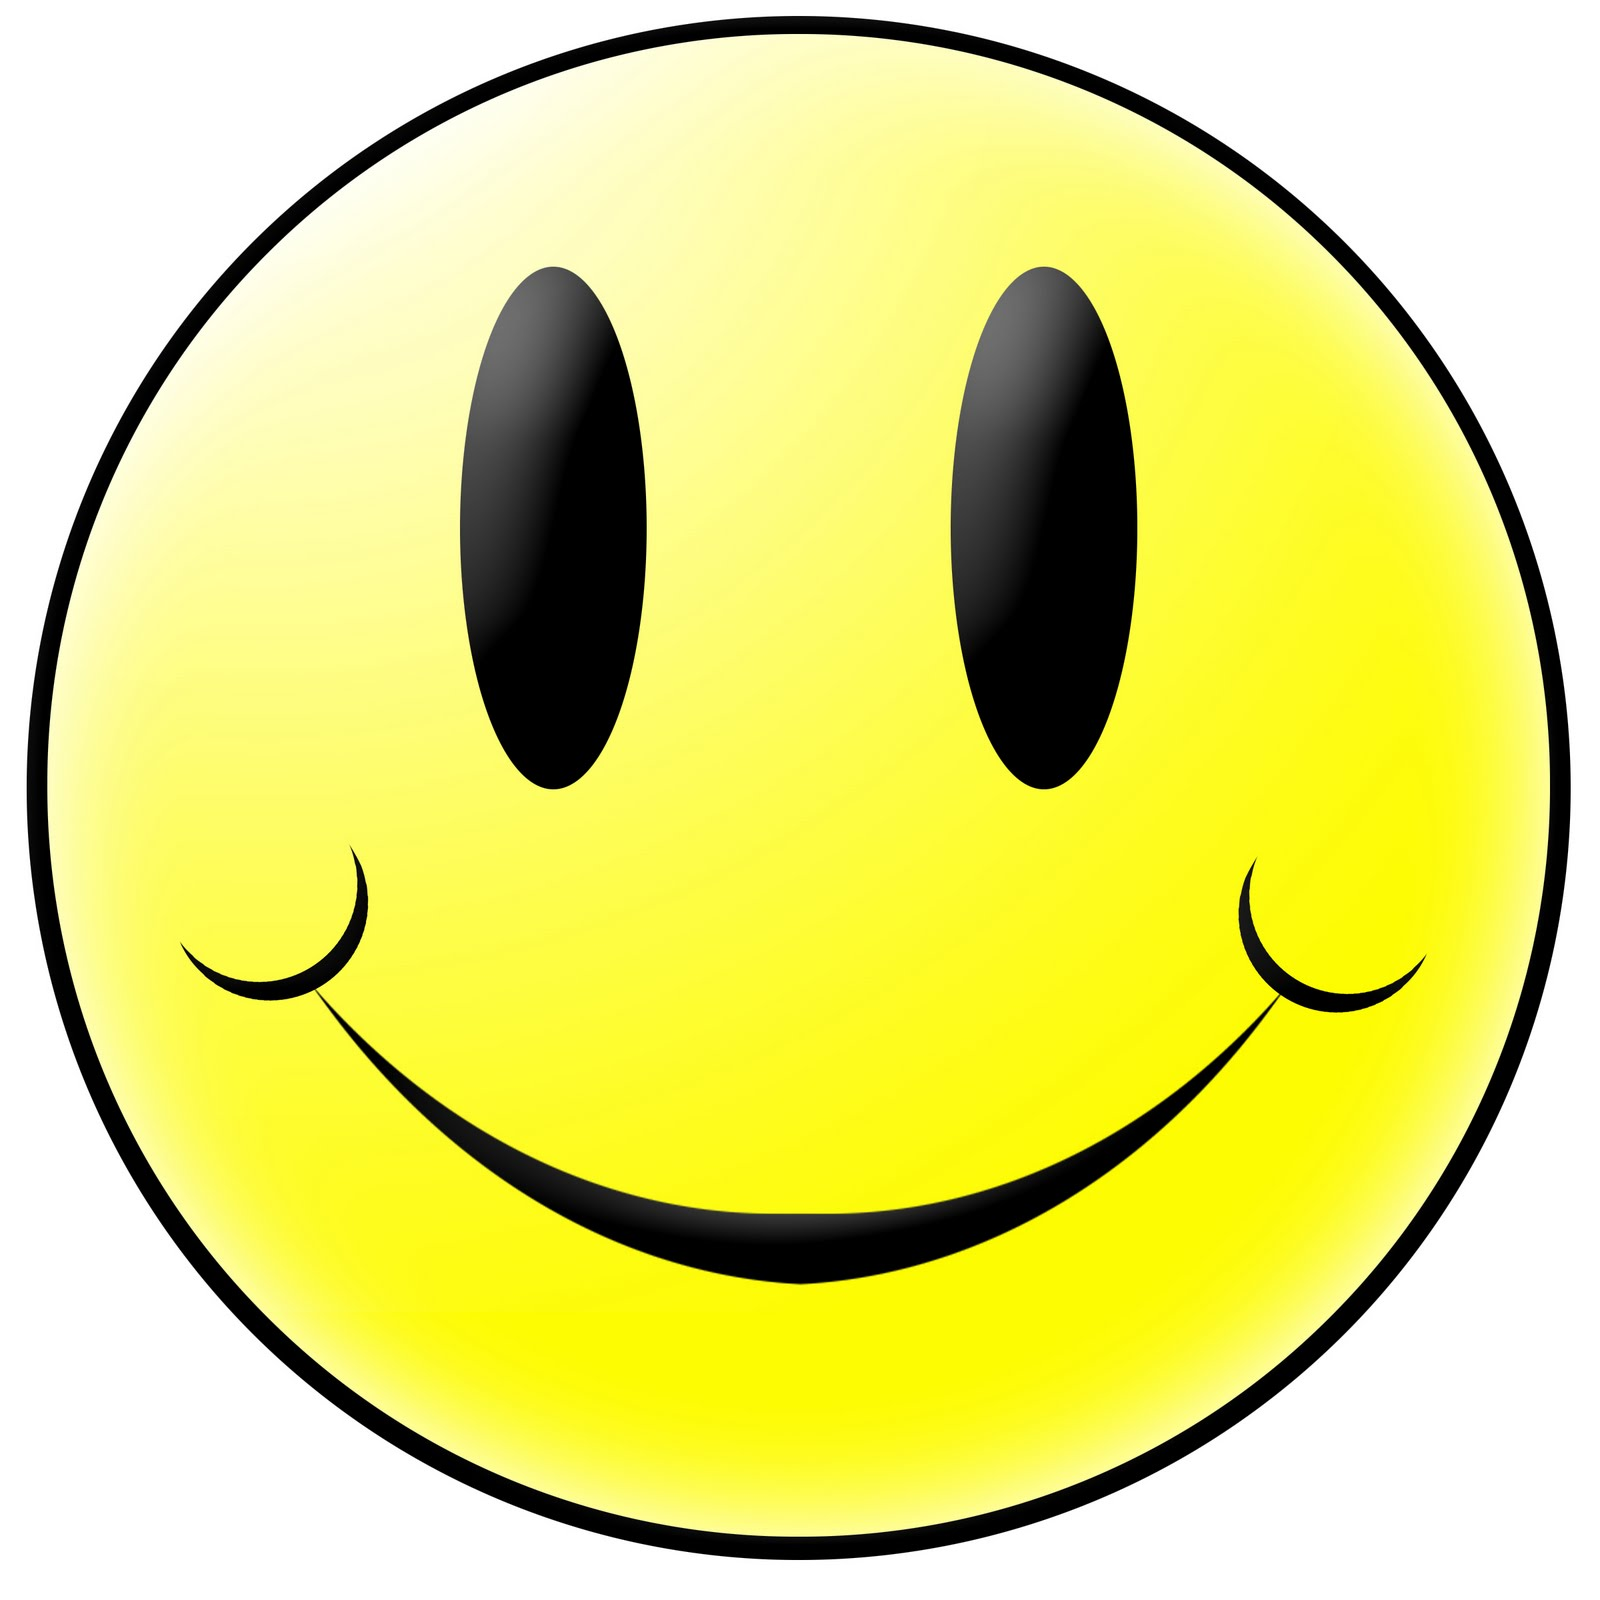 Free Smiley Cartoon Faces, Download Free Clip Art, Free Clip Art on.